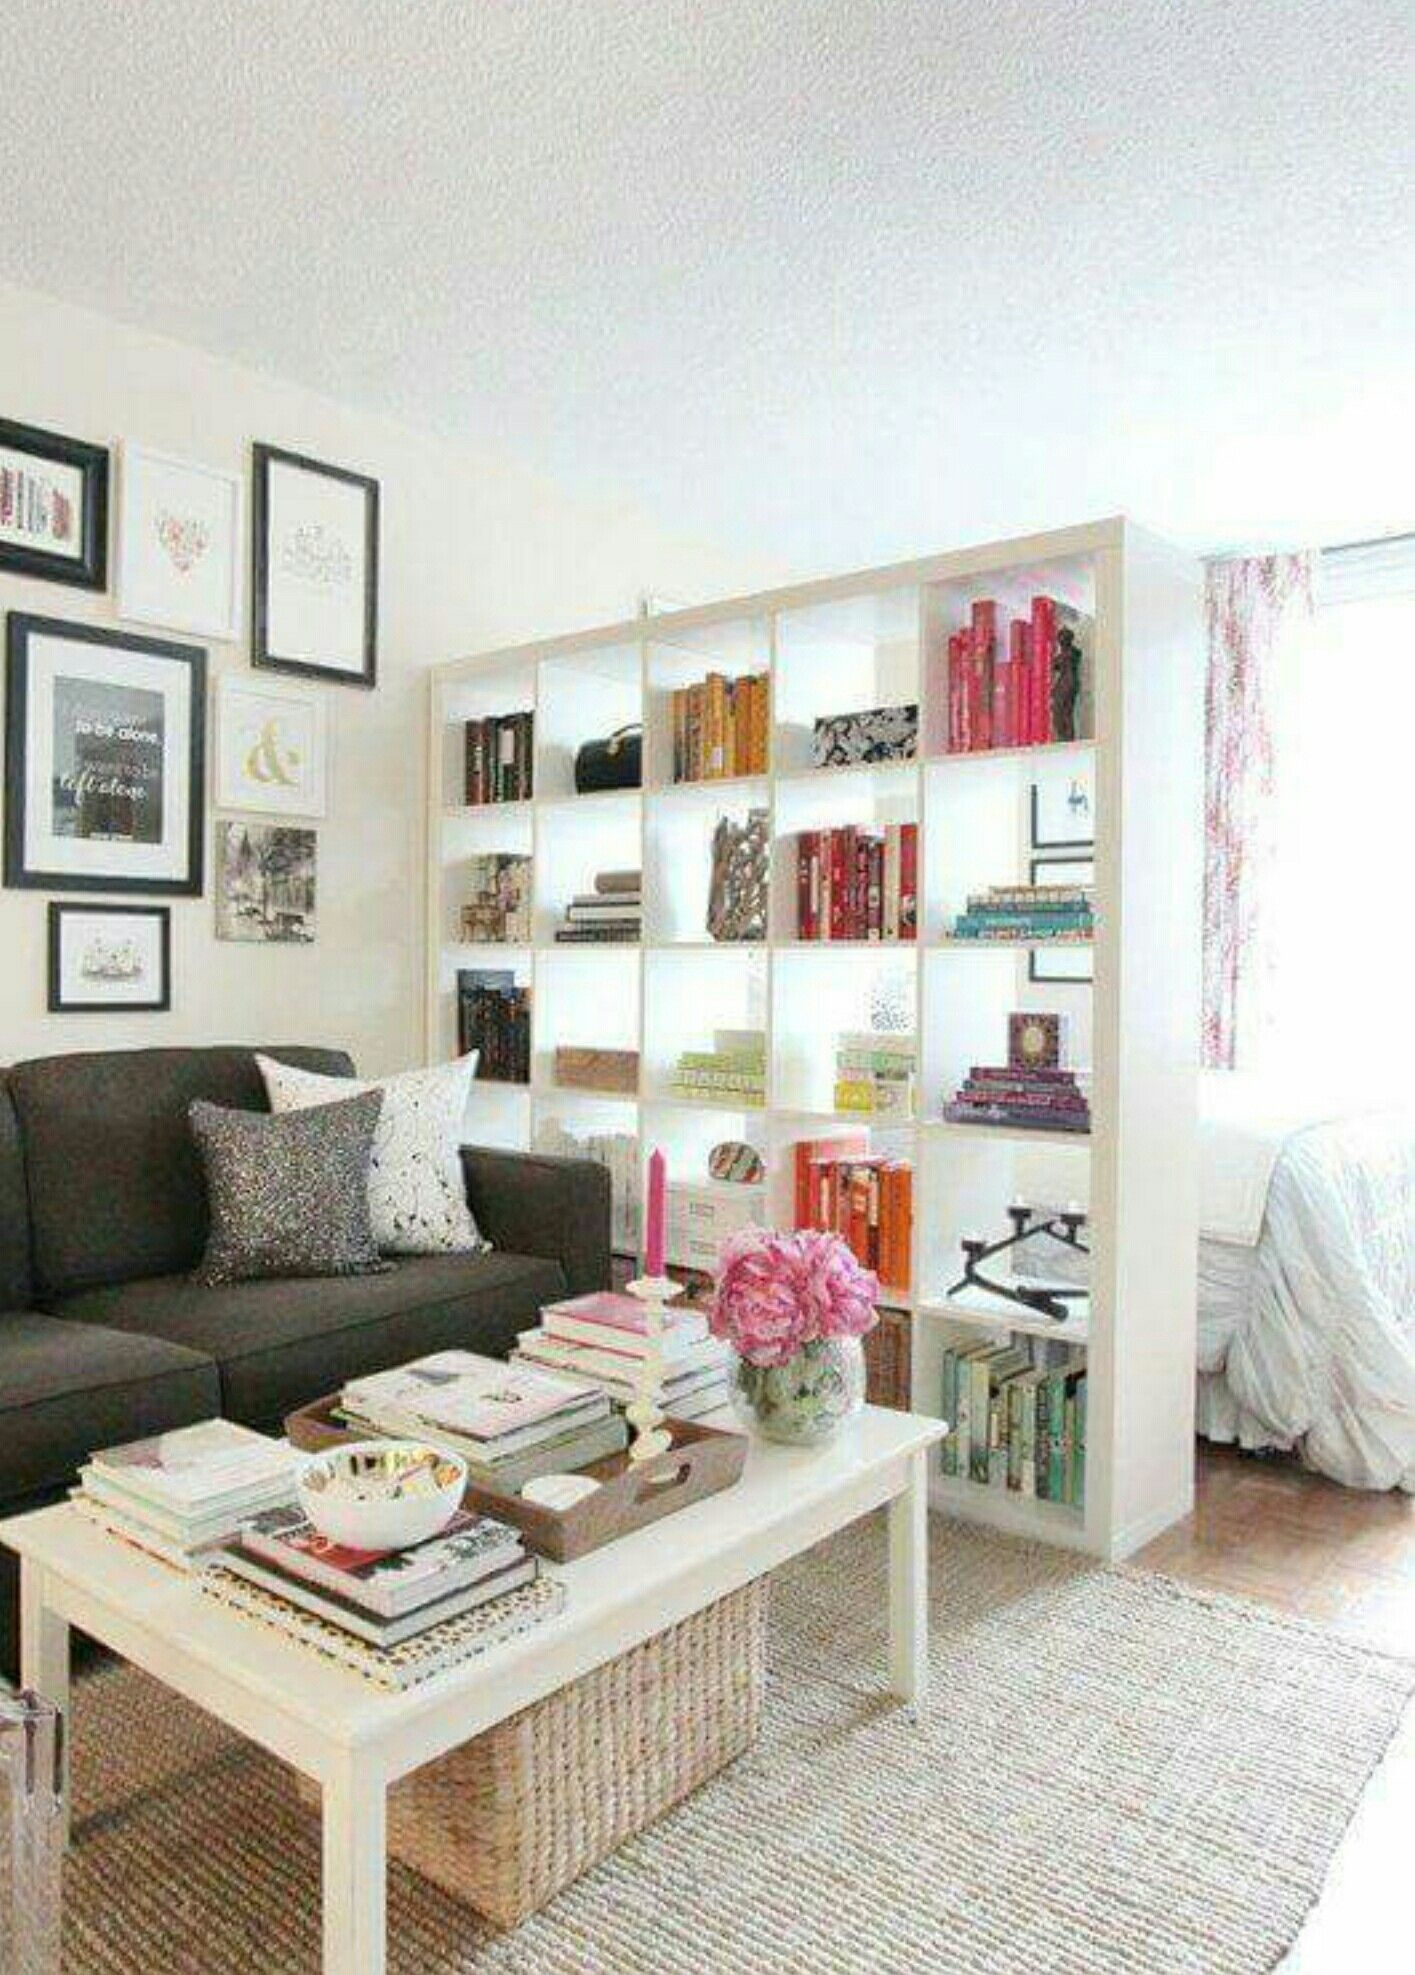 10 ridiculous ideas can change your life room divider cabinet rh pinterest com